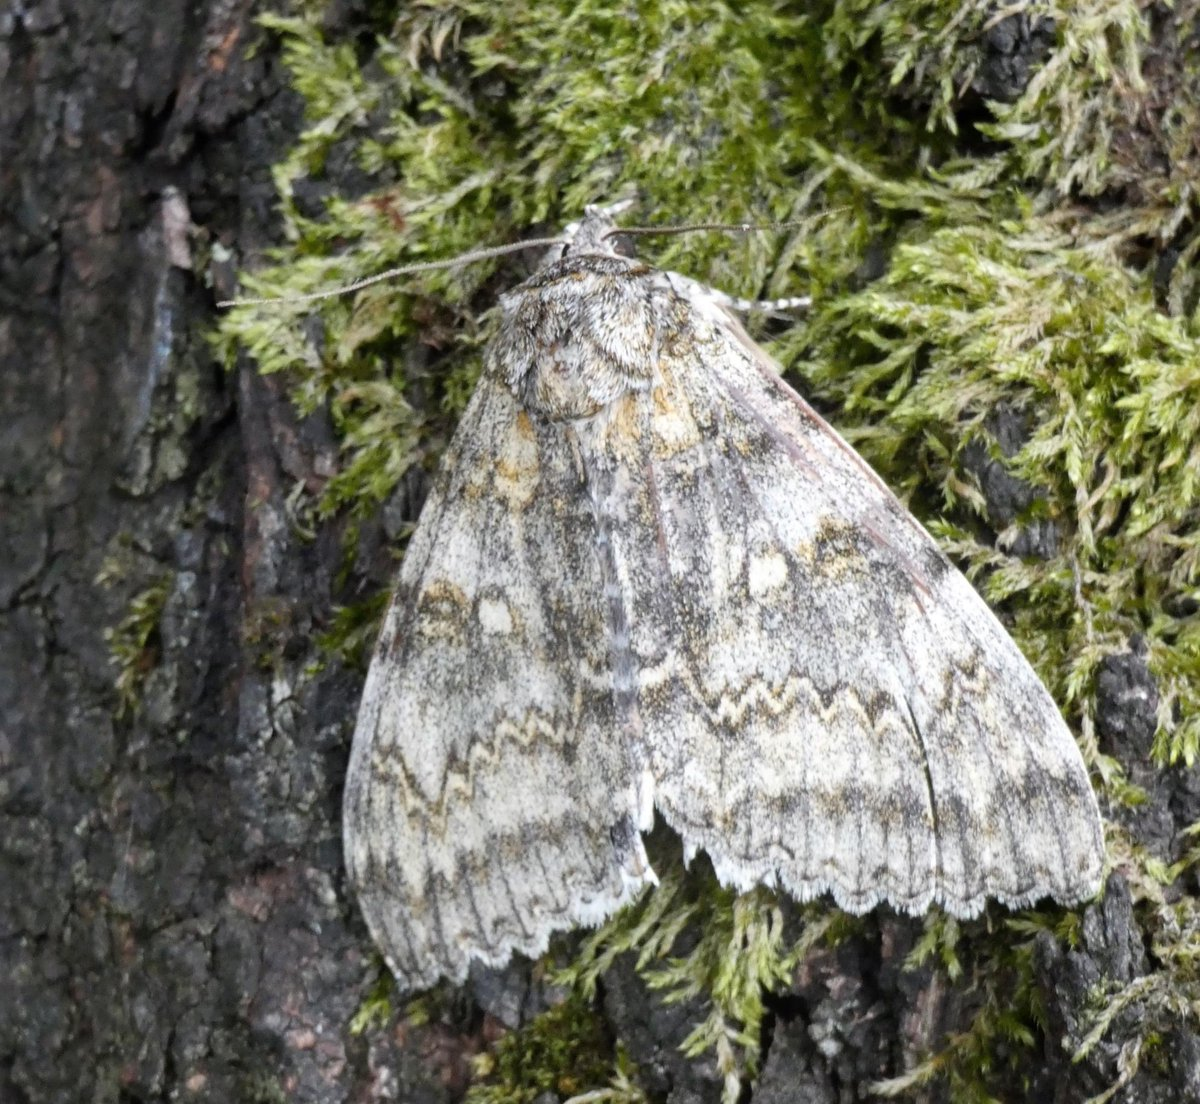 Monster Moth.  A big thank you to Mike Southall for letting us see his Clifden Nonpareil today prior to release.  They're incredible moths and hopefully we shall see more now we know that they are now breeding in the region. Pics from @mikethebike9  @savebutterflies #MothsMatter https://t.co/quPqZAdFxV